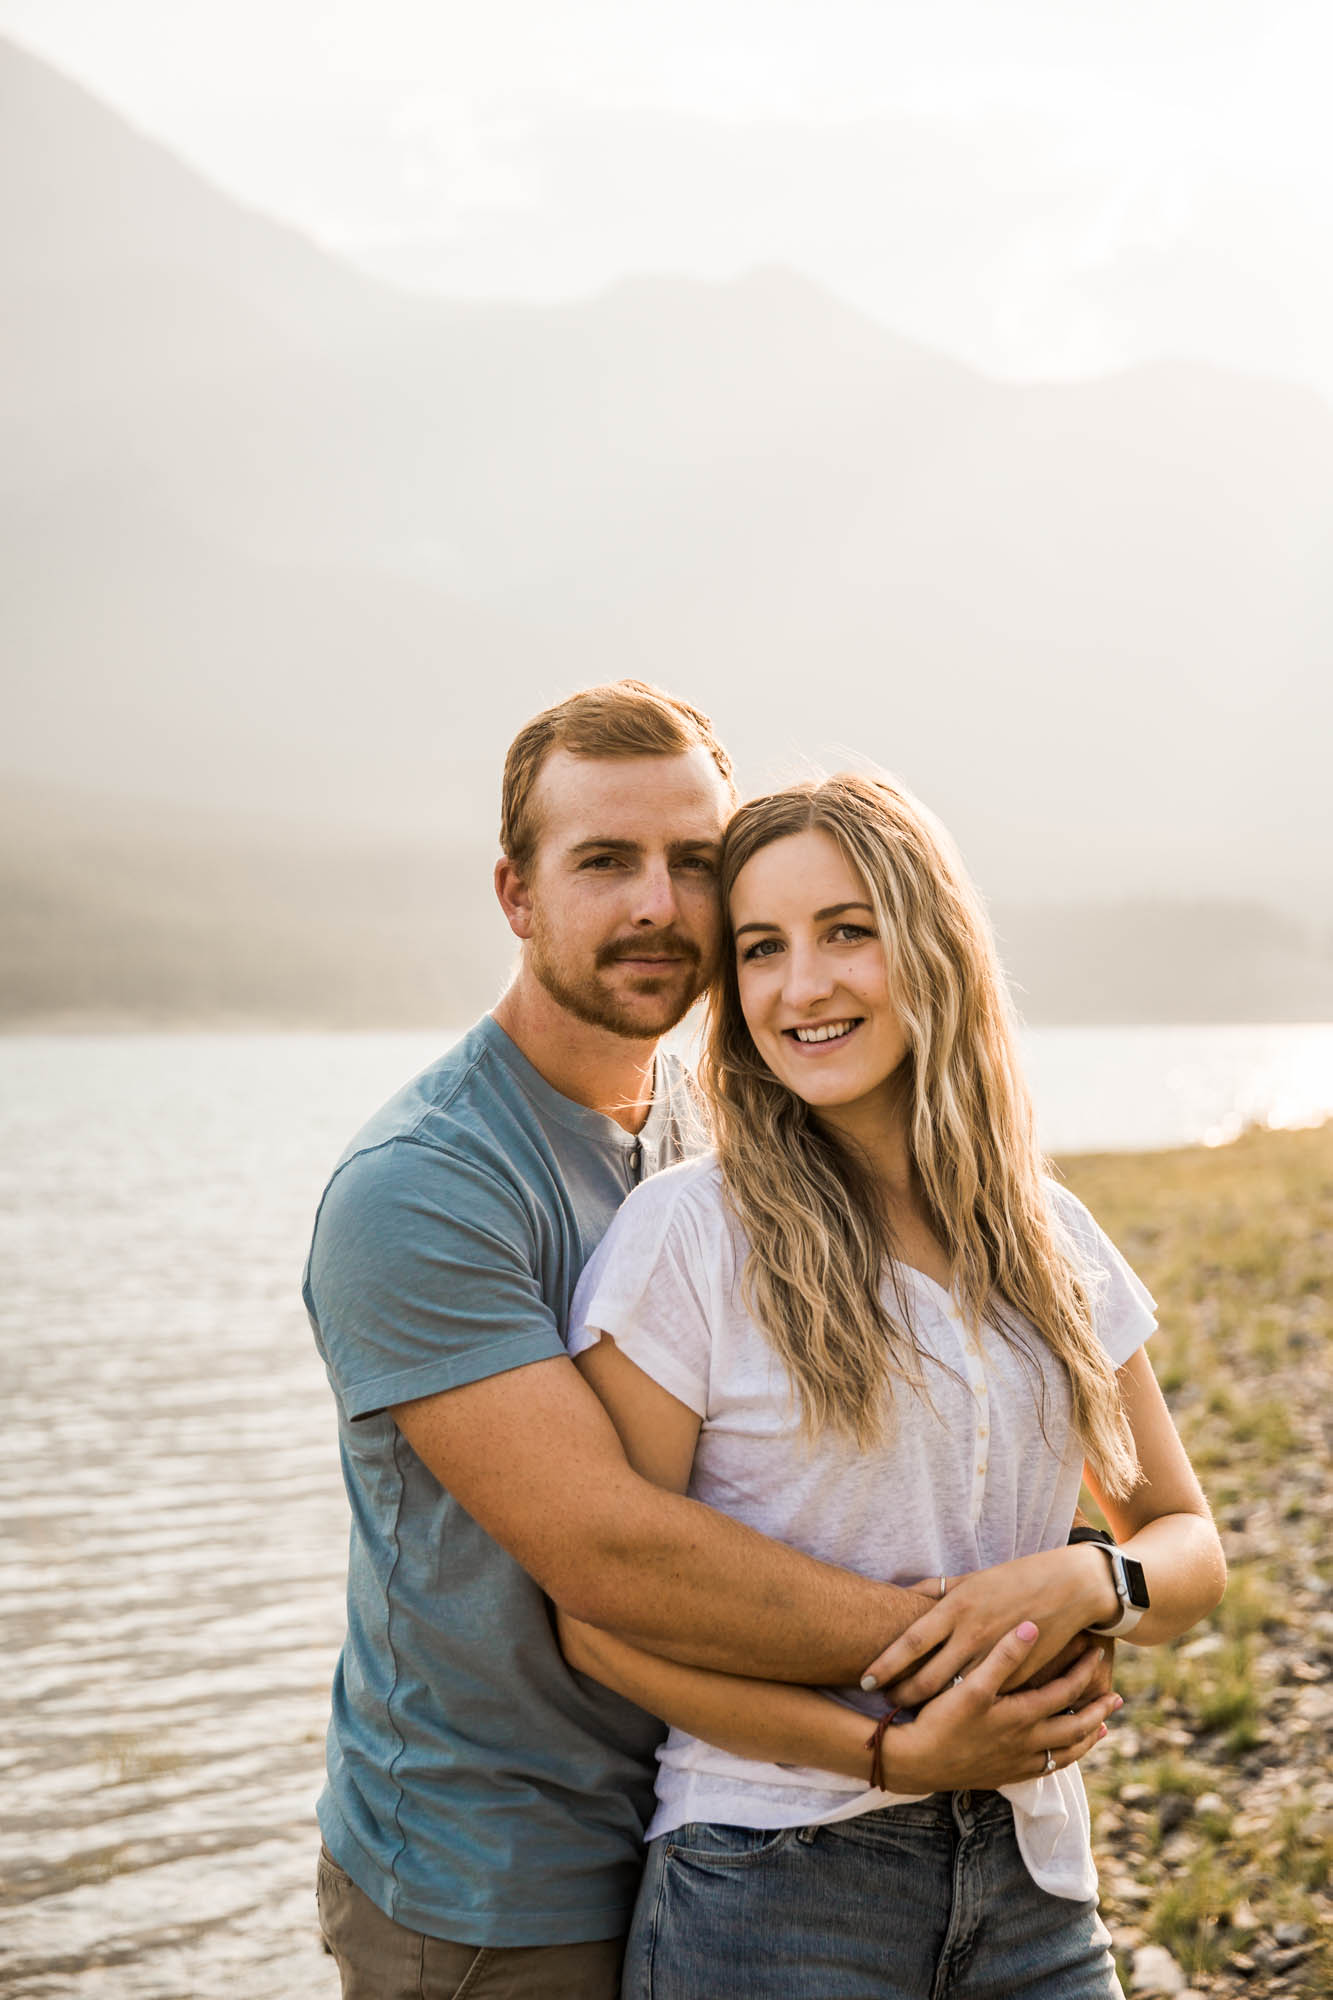 Calgary wedding and engagement photographer, couple by the water and mountains at sunset in Kananaskis Country